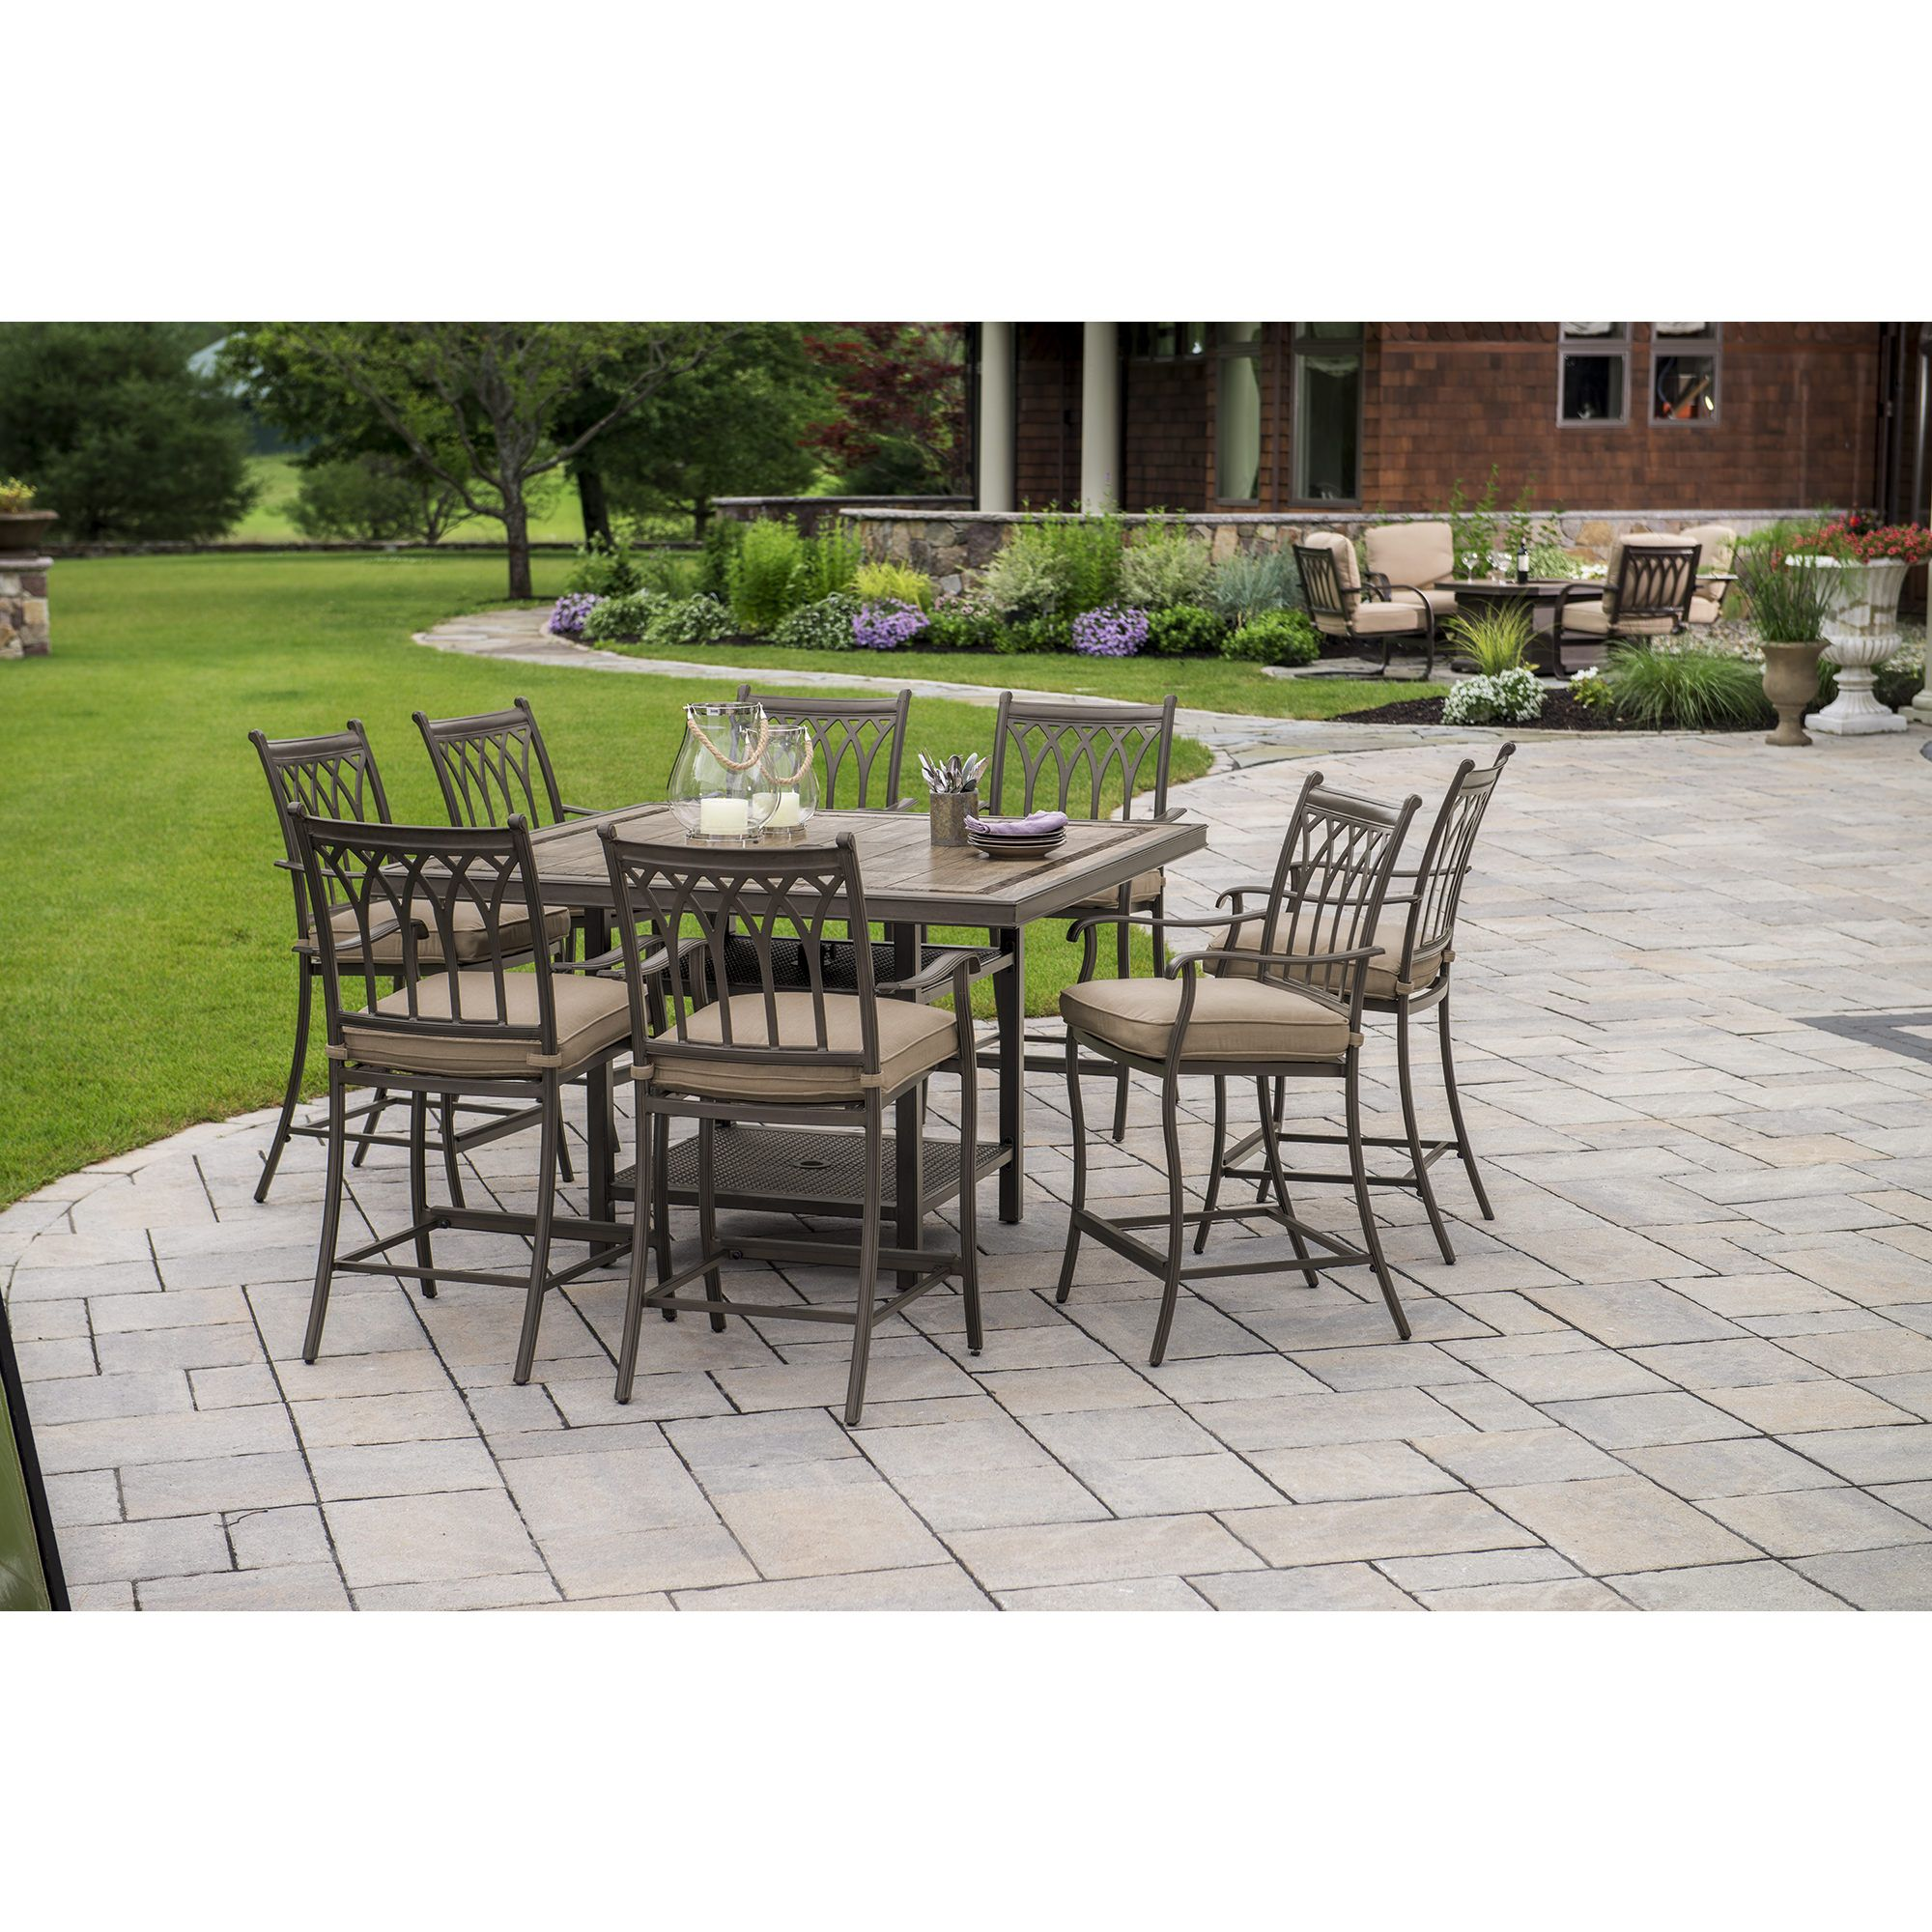 Bj's 9 Piece Outdoor Dining Set